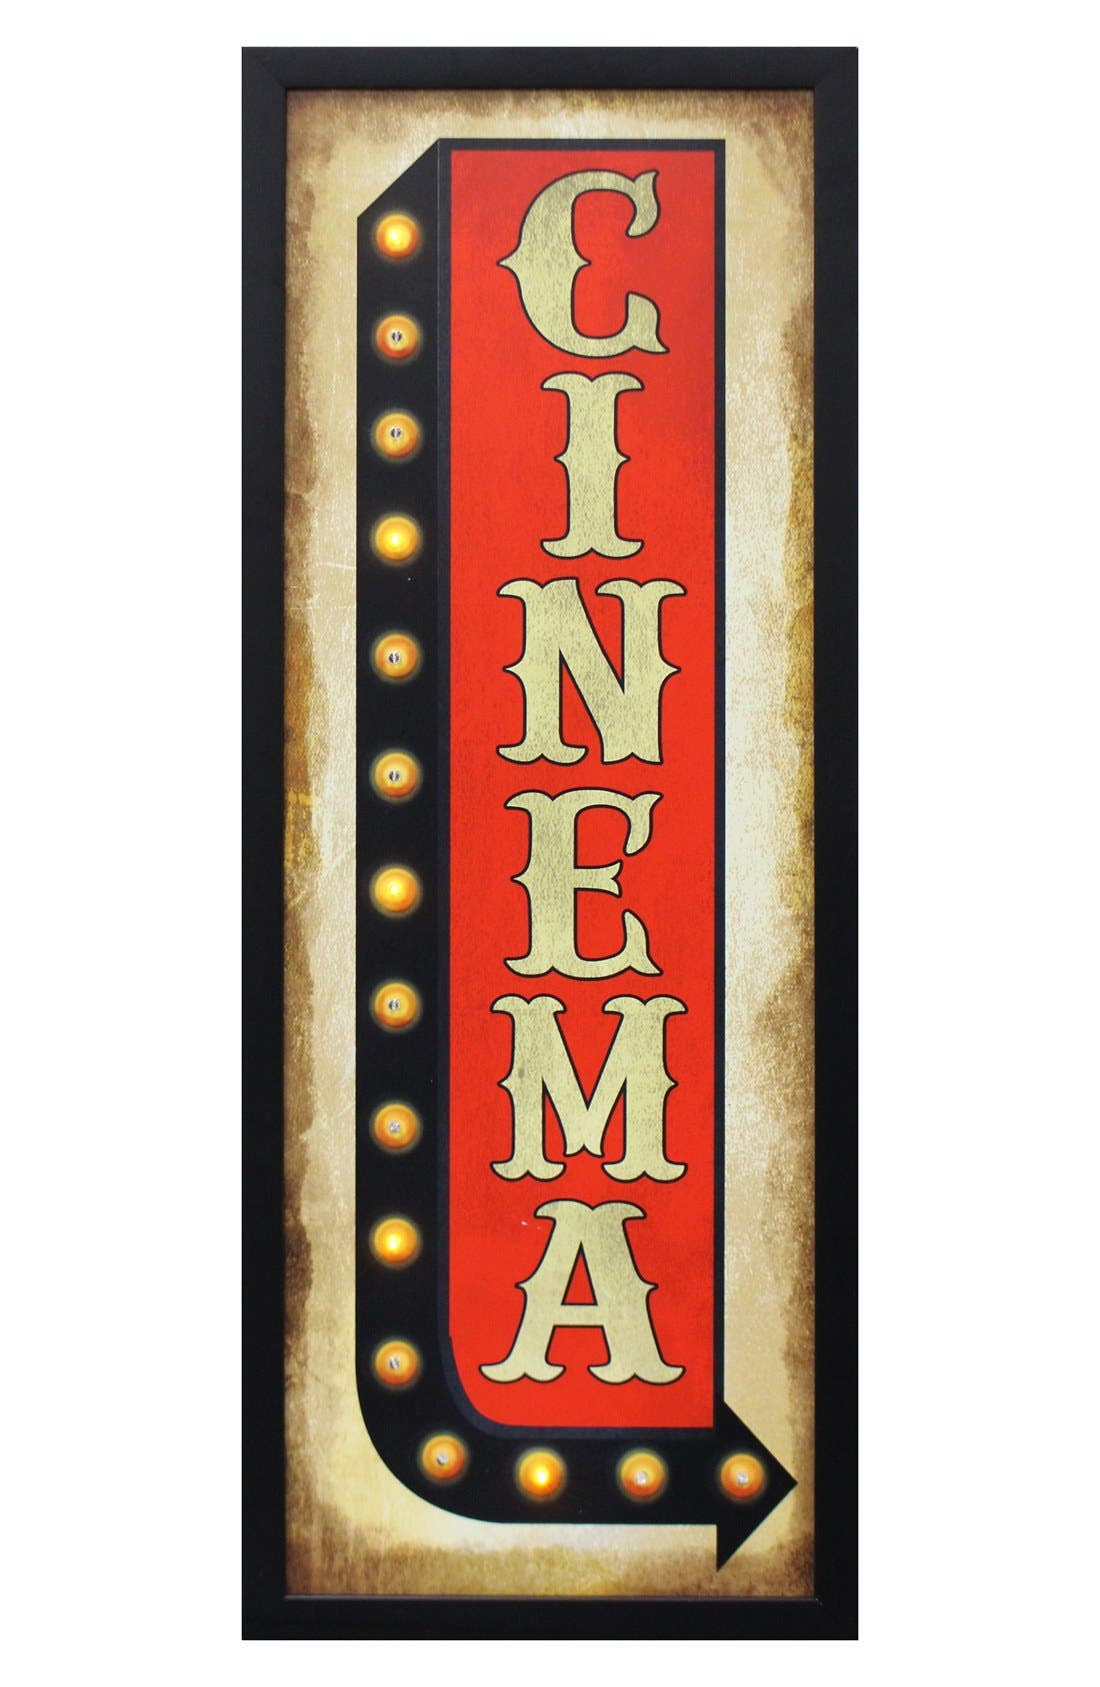 Alternate Image 1 Selected - Crystal Art Gallery 'Cinema' LED Light-Up Marquee Sign